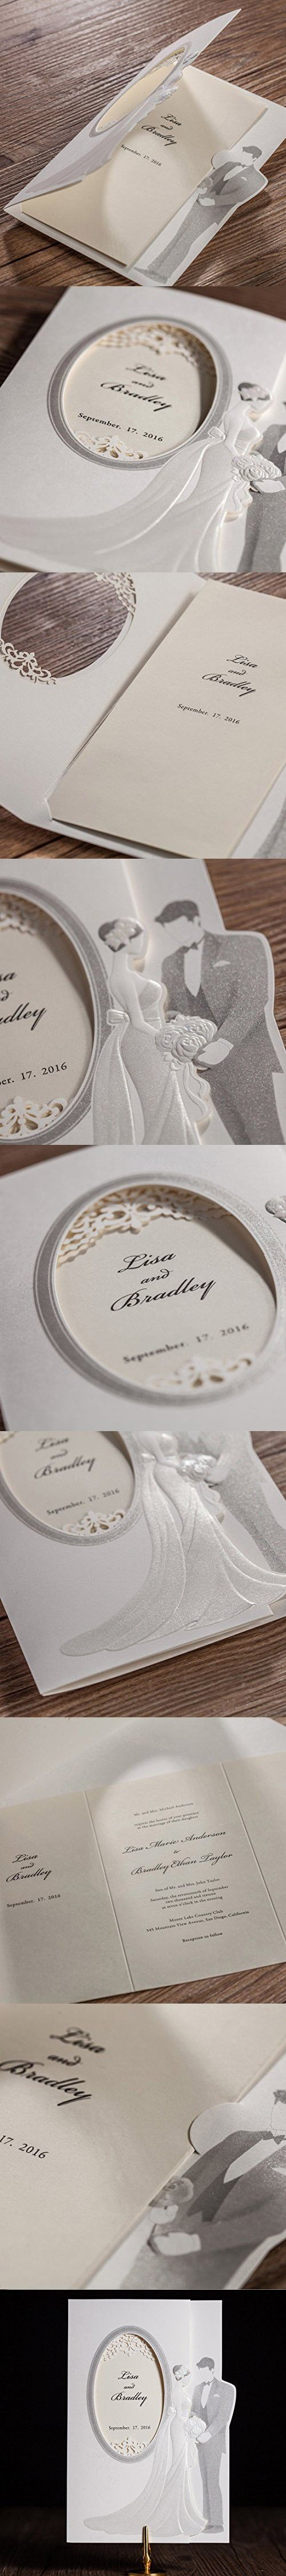 invitation wordings for wedding by bride and groom%0A   pcs Wishmade Laser Cut Wedding Invitations Cards kit With Bride and Groom  Cardstock Paper For Engagement